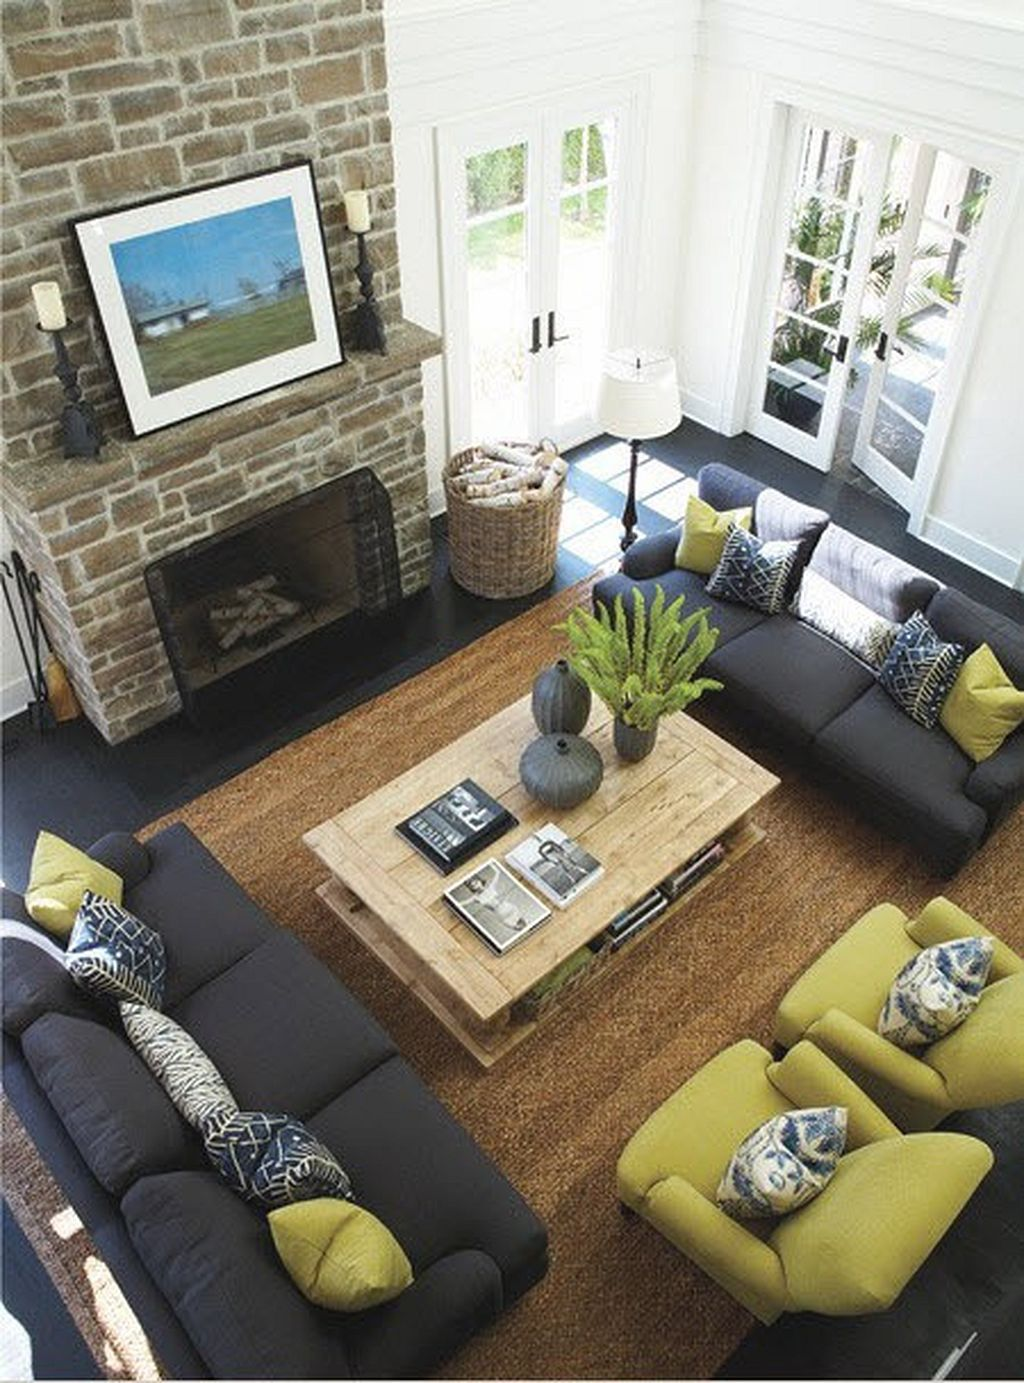 70 living room arrangement ideas 7 living room furniture on family picture wall ideas for living room furniture arrangements id=59583